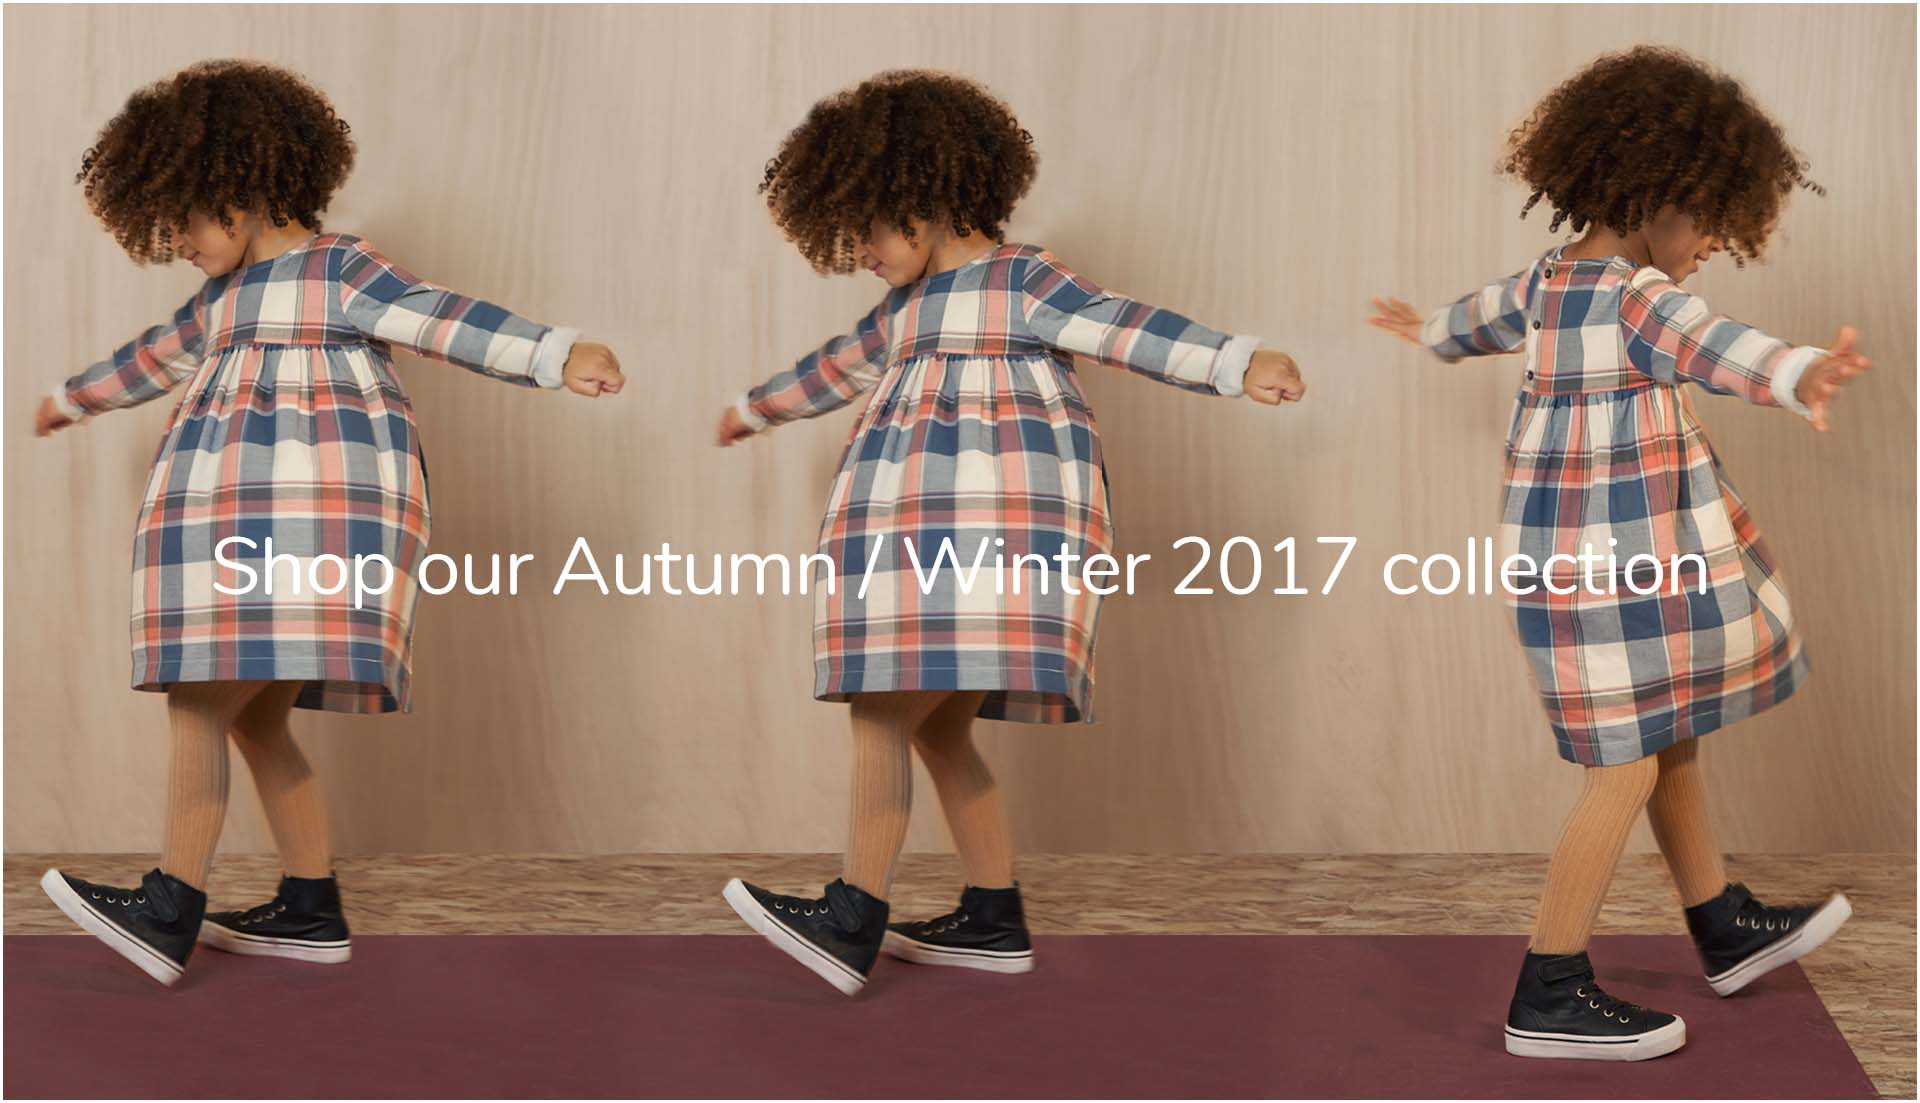 Where's that Bear? Autumn / Winter 2017